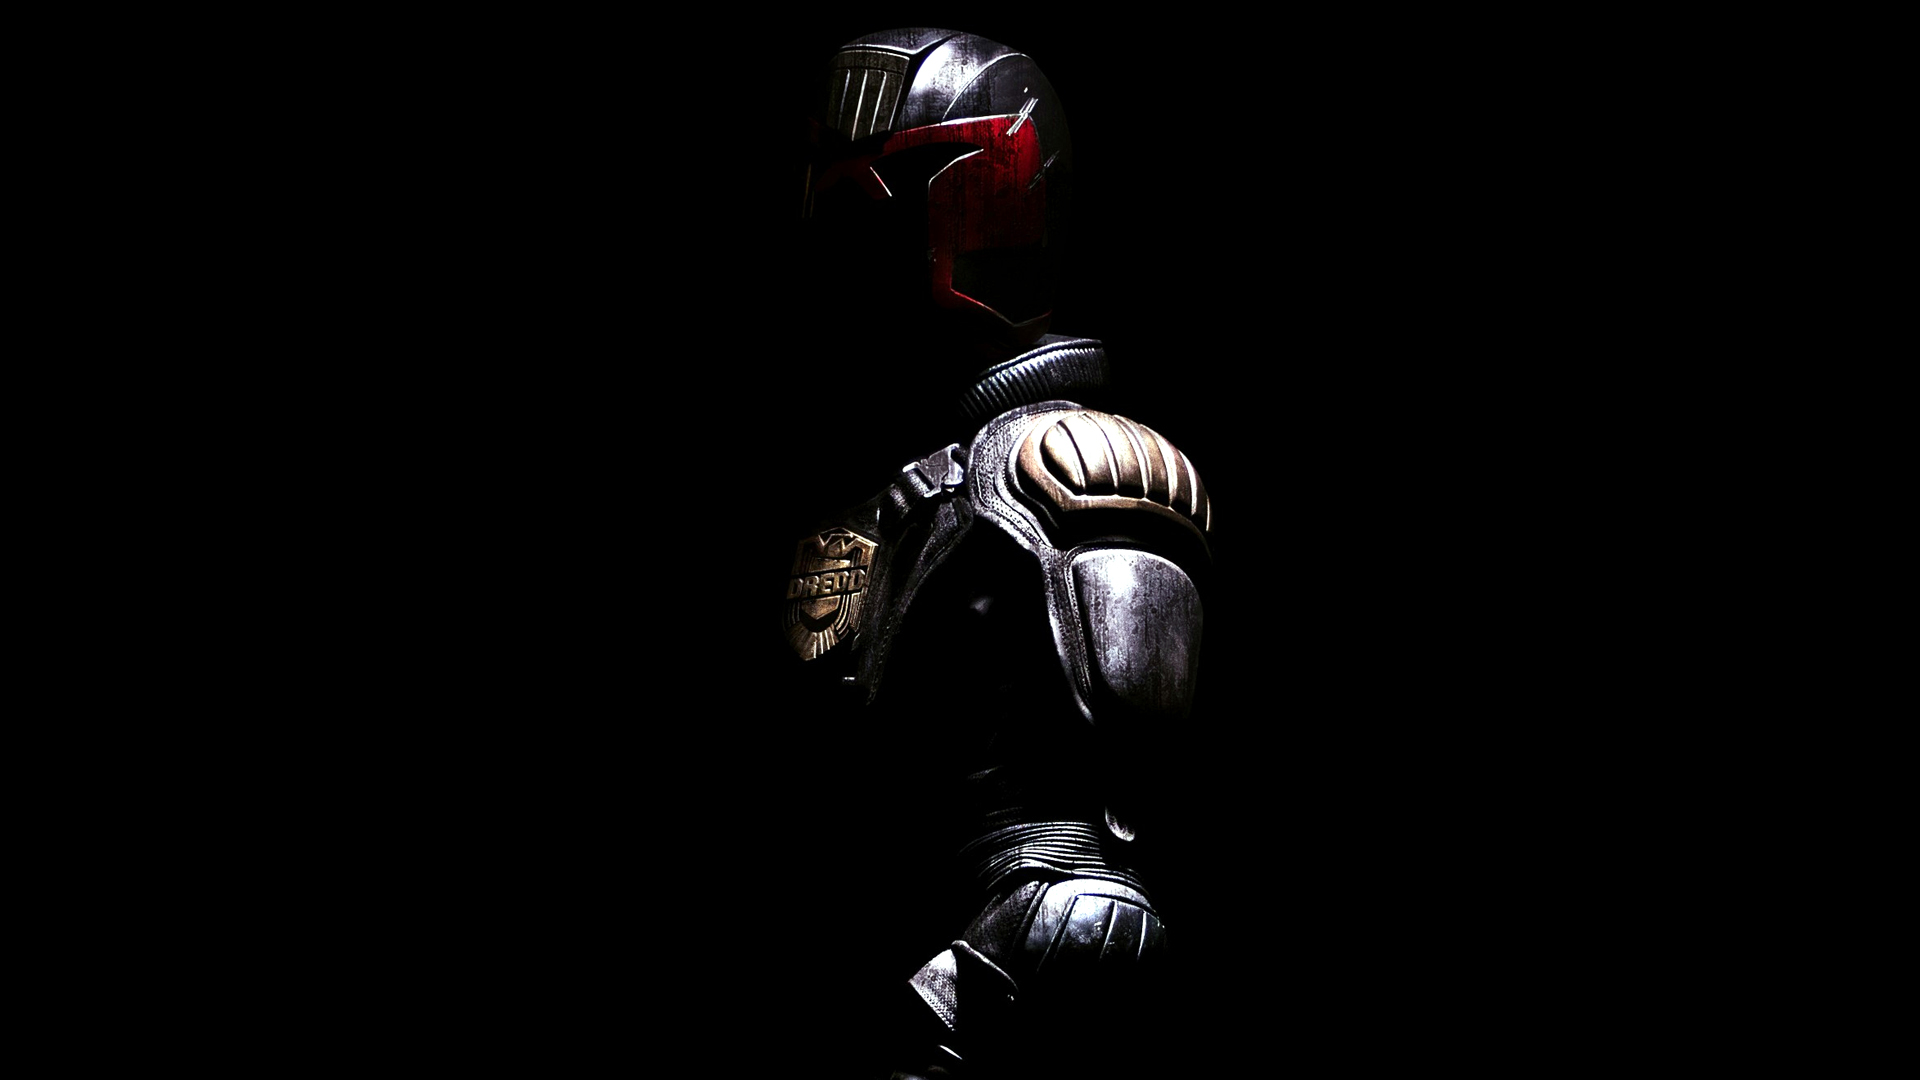 Dredd movies action superhero wallpaper 1920x1080 101795 1920x1080